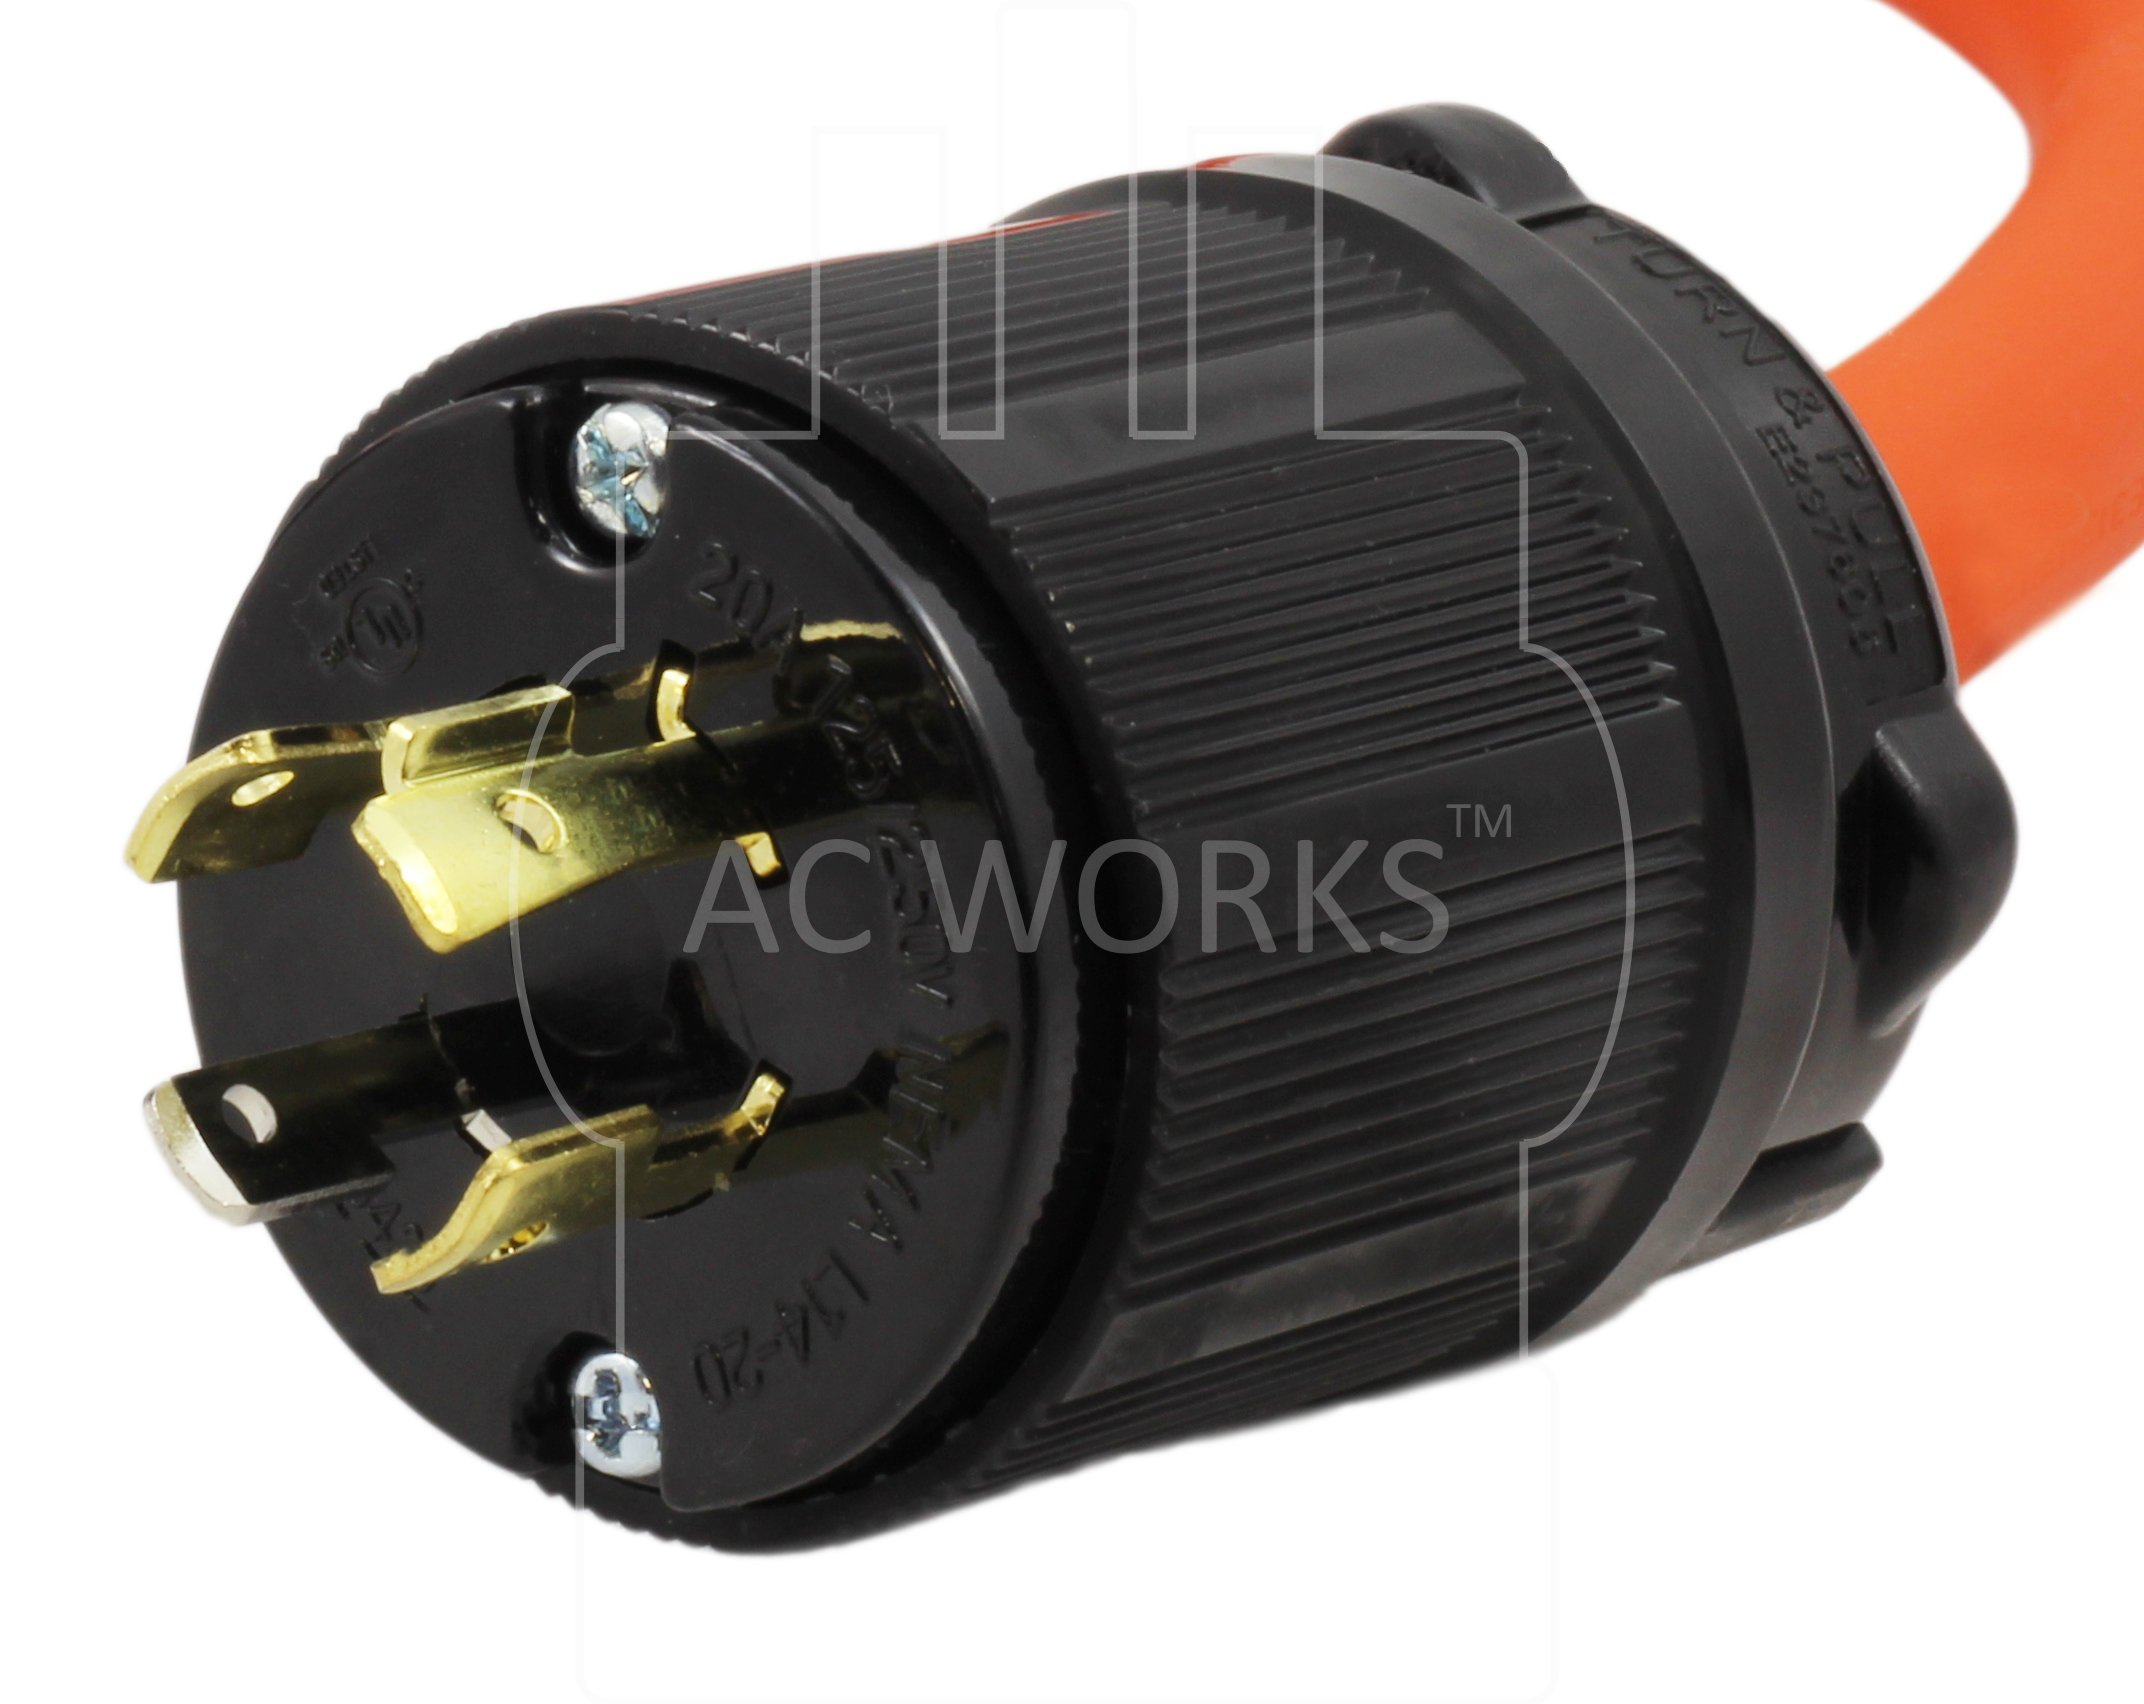 AC WORKS 6-50 Welder Adapter (L14-20 20A 4-Prong Locking to 6-50) by AC WORKS (Image #2)